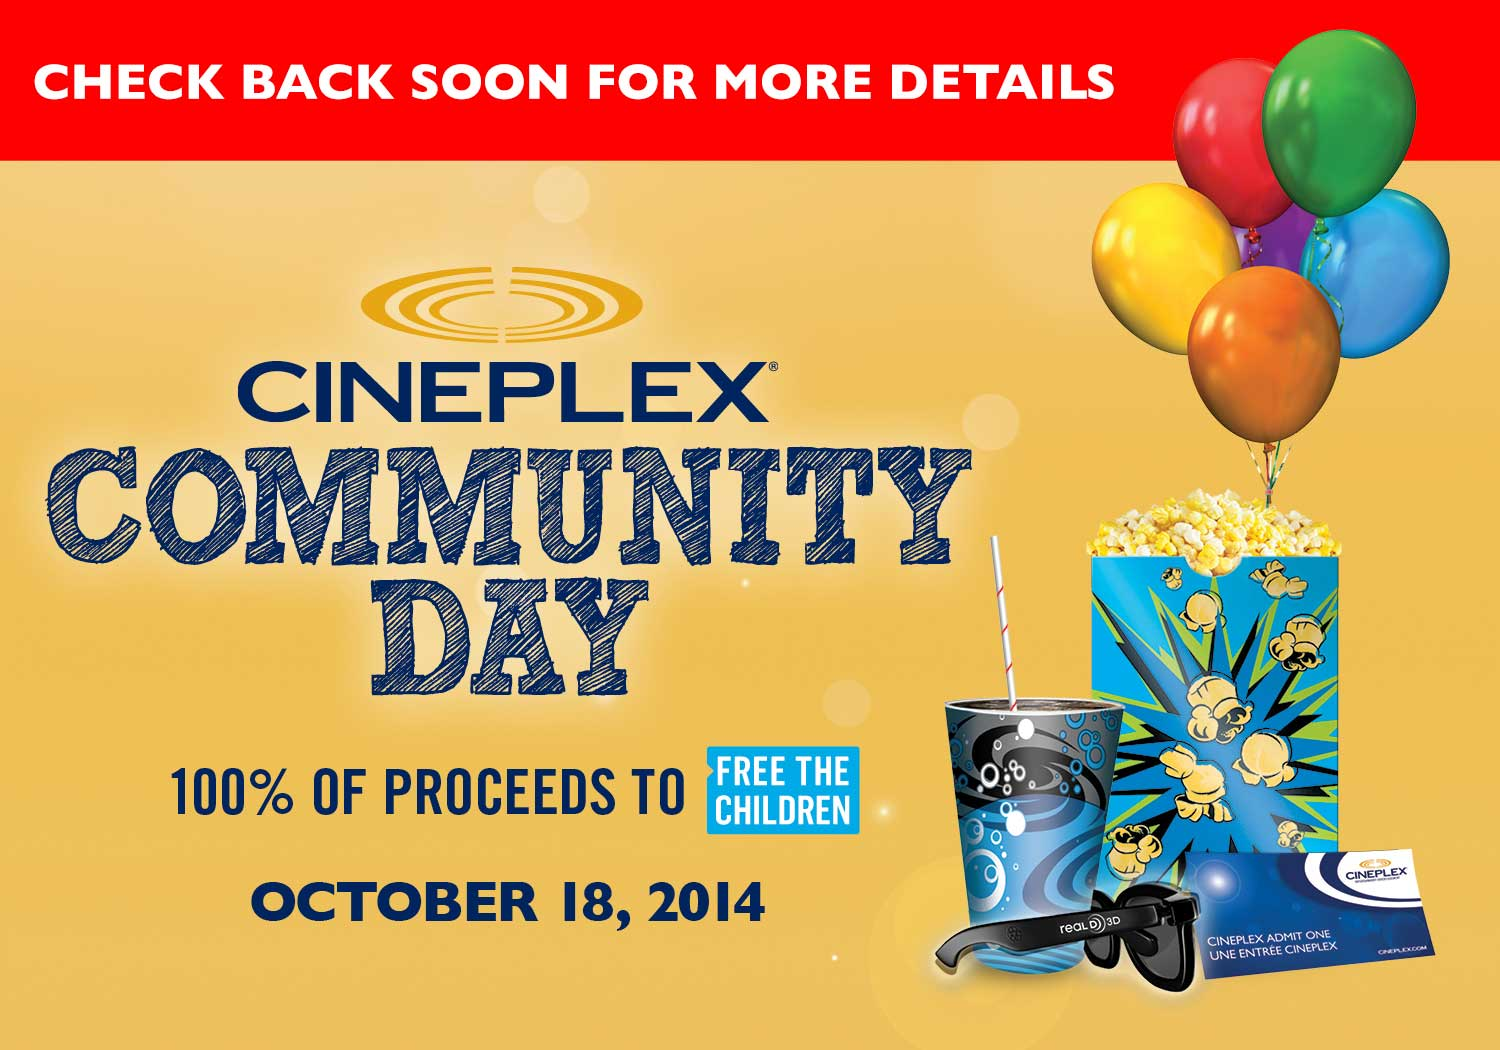 General Mills & hingcess-serp.cf Free Movie Giveaway. Everyone will win free Movie tickets with this cool promotion from General Mills and Cineplex Canada. It's easy too! All you need to do is buy the specially marked packages of General Mills Products.